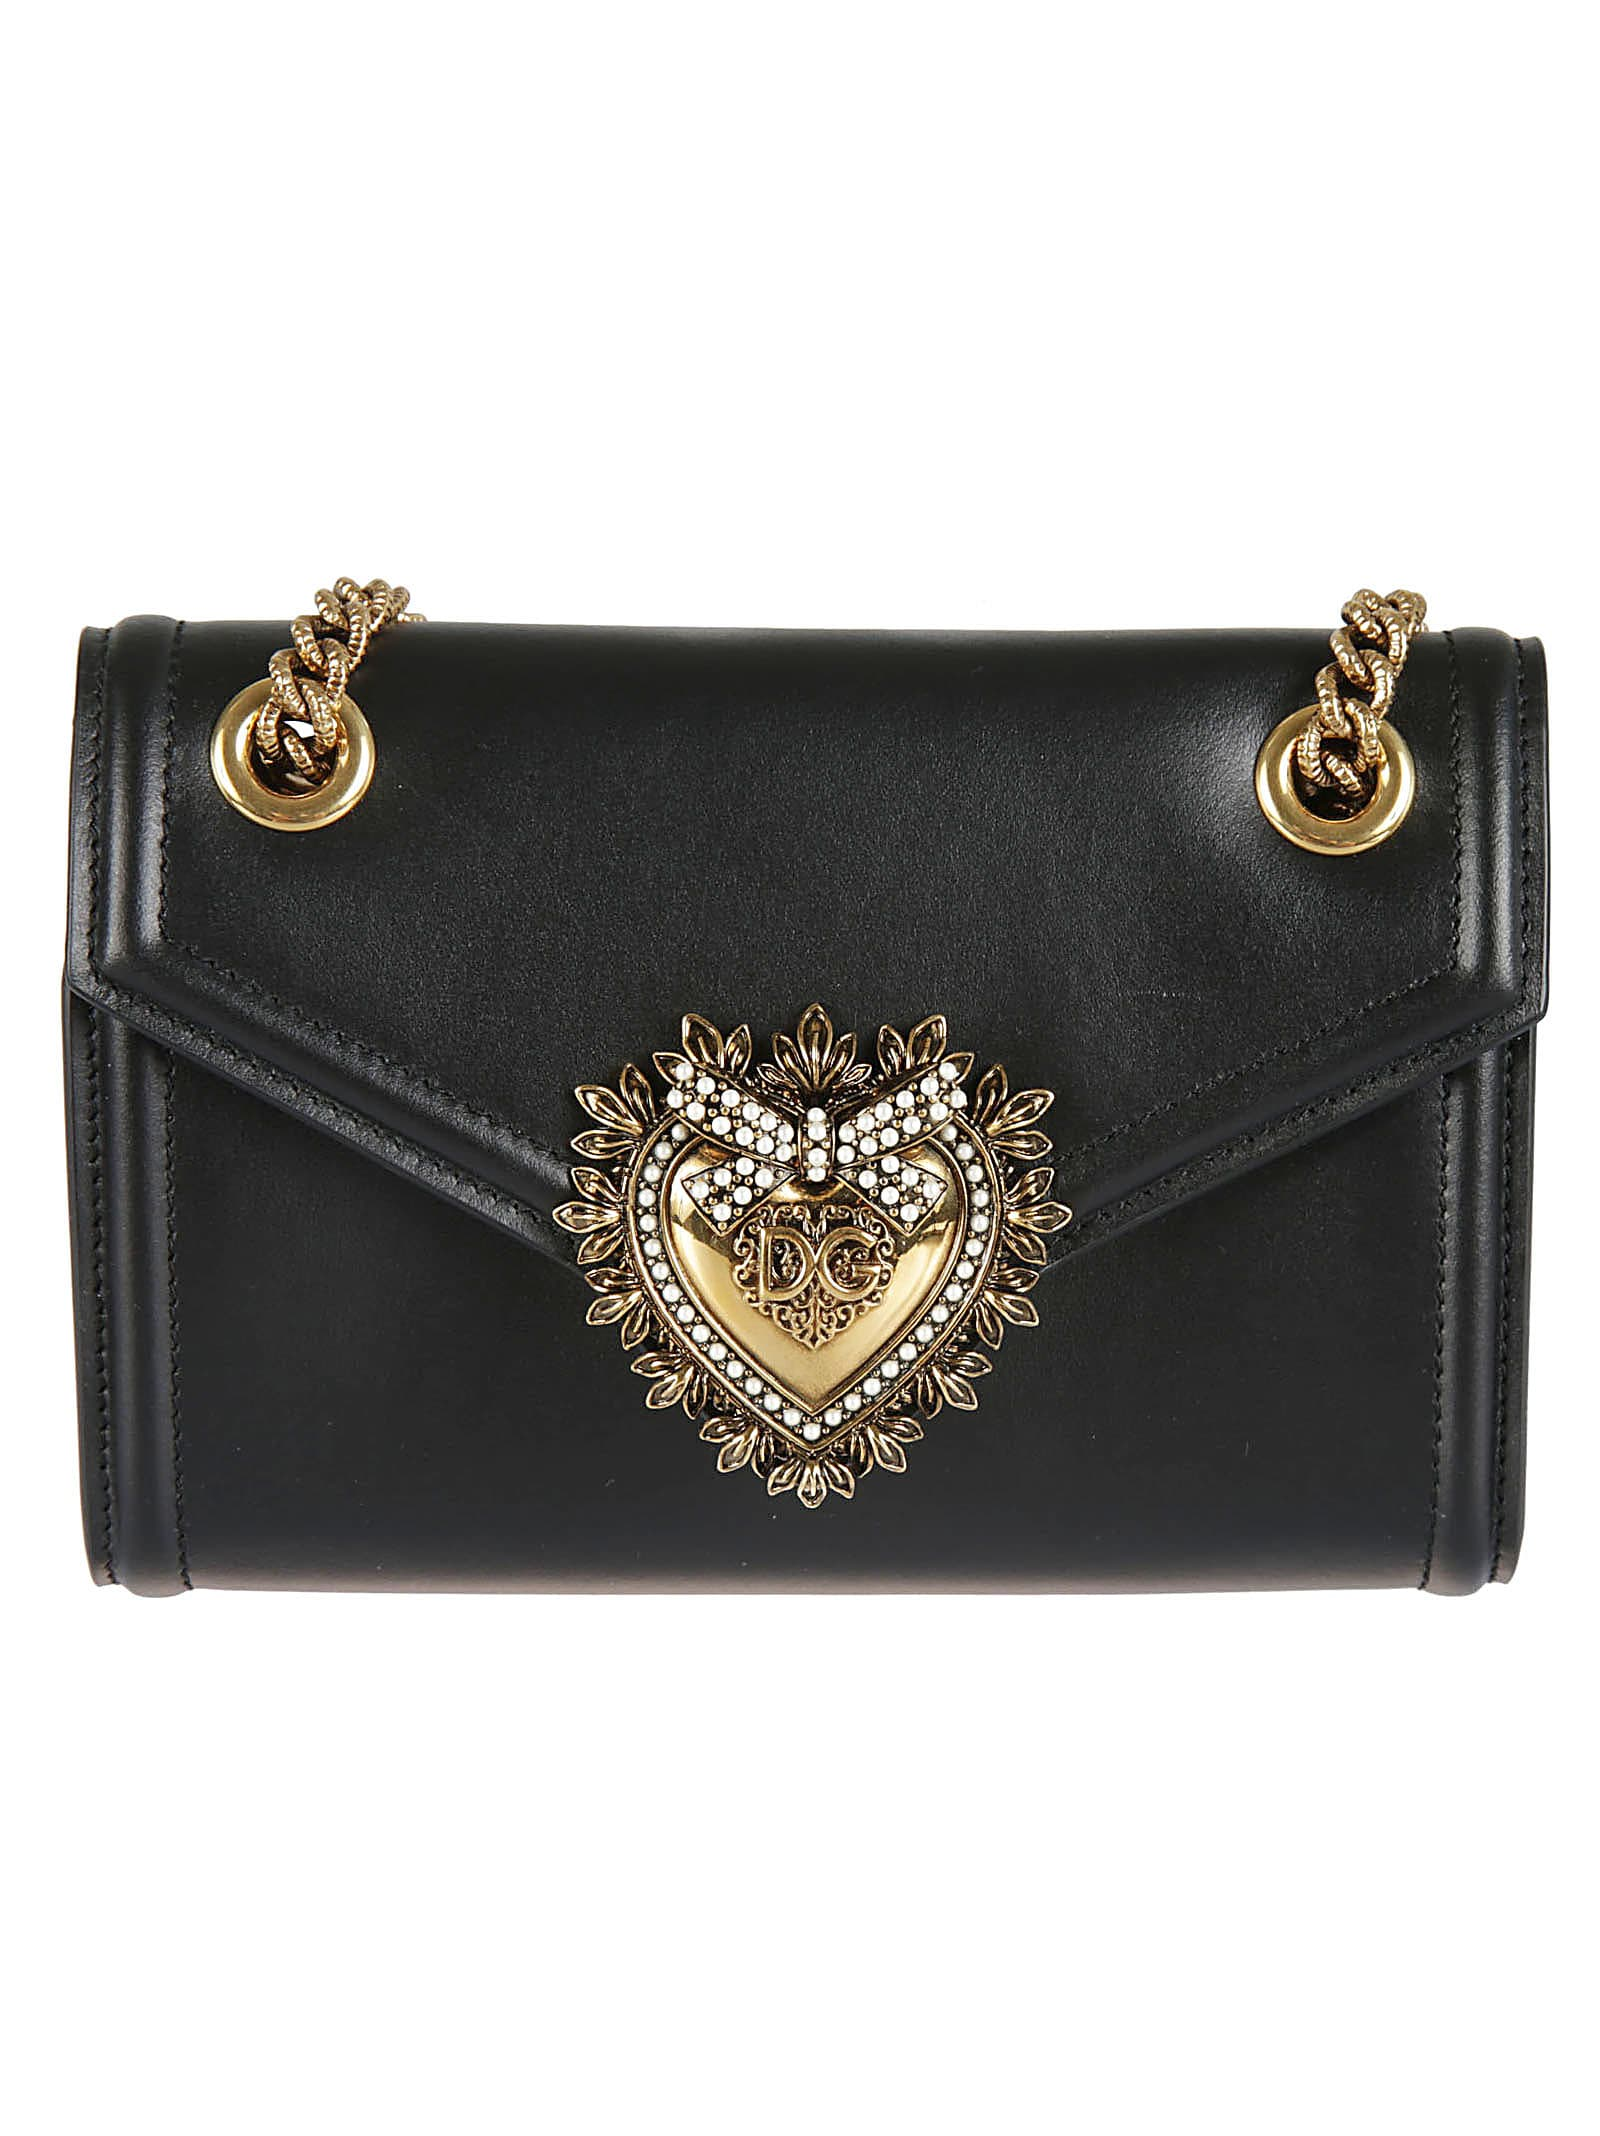 Dolce & Gabbana Embellished Shoulder Bag